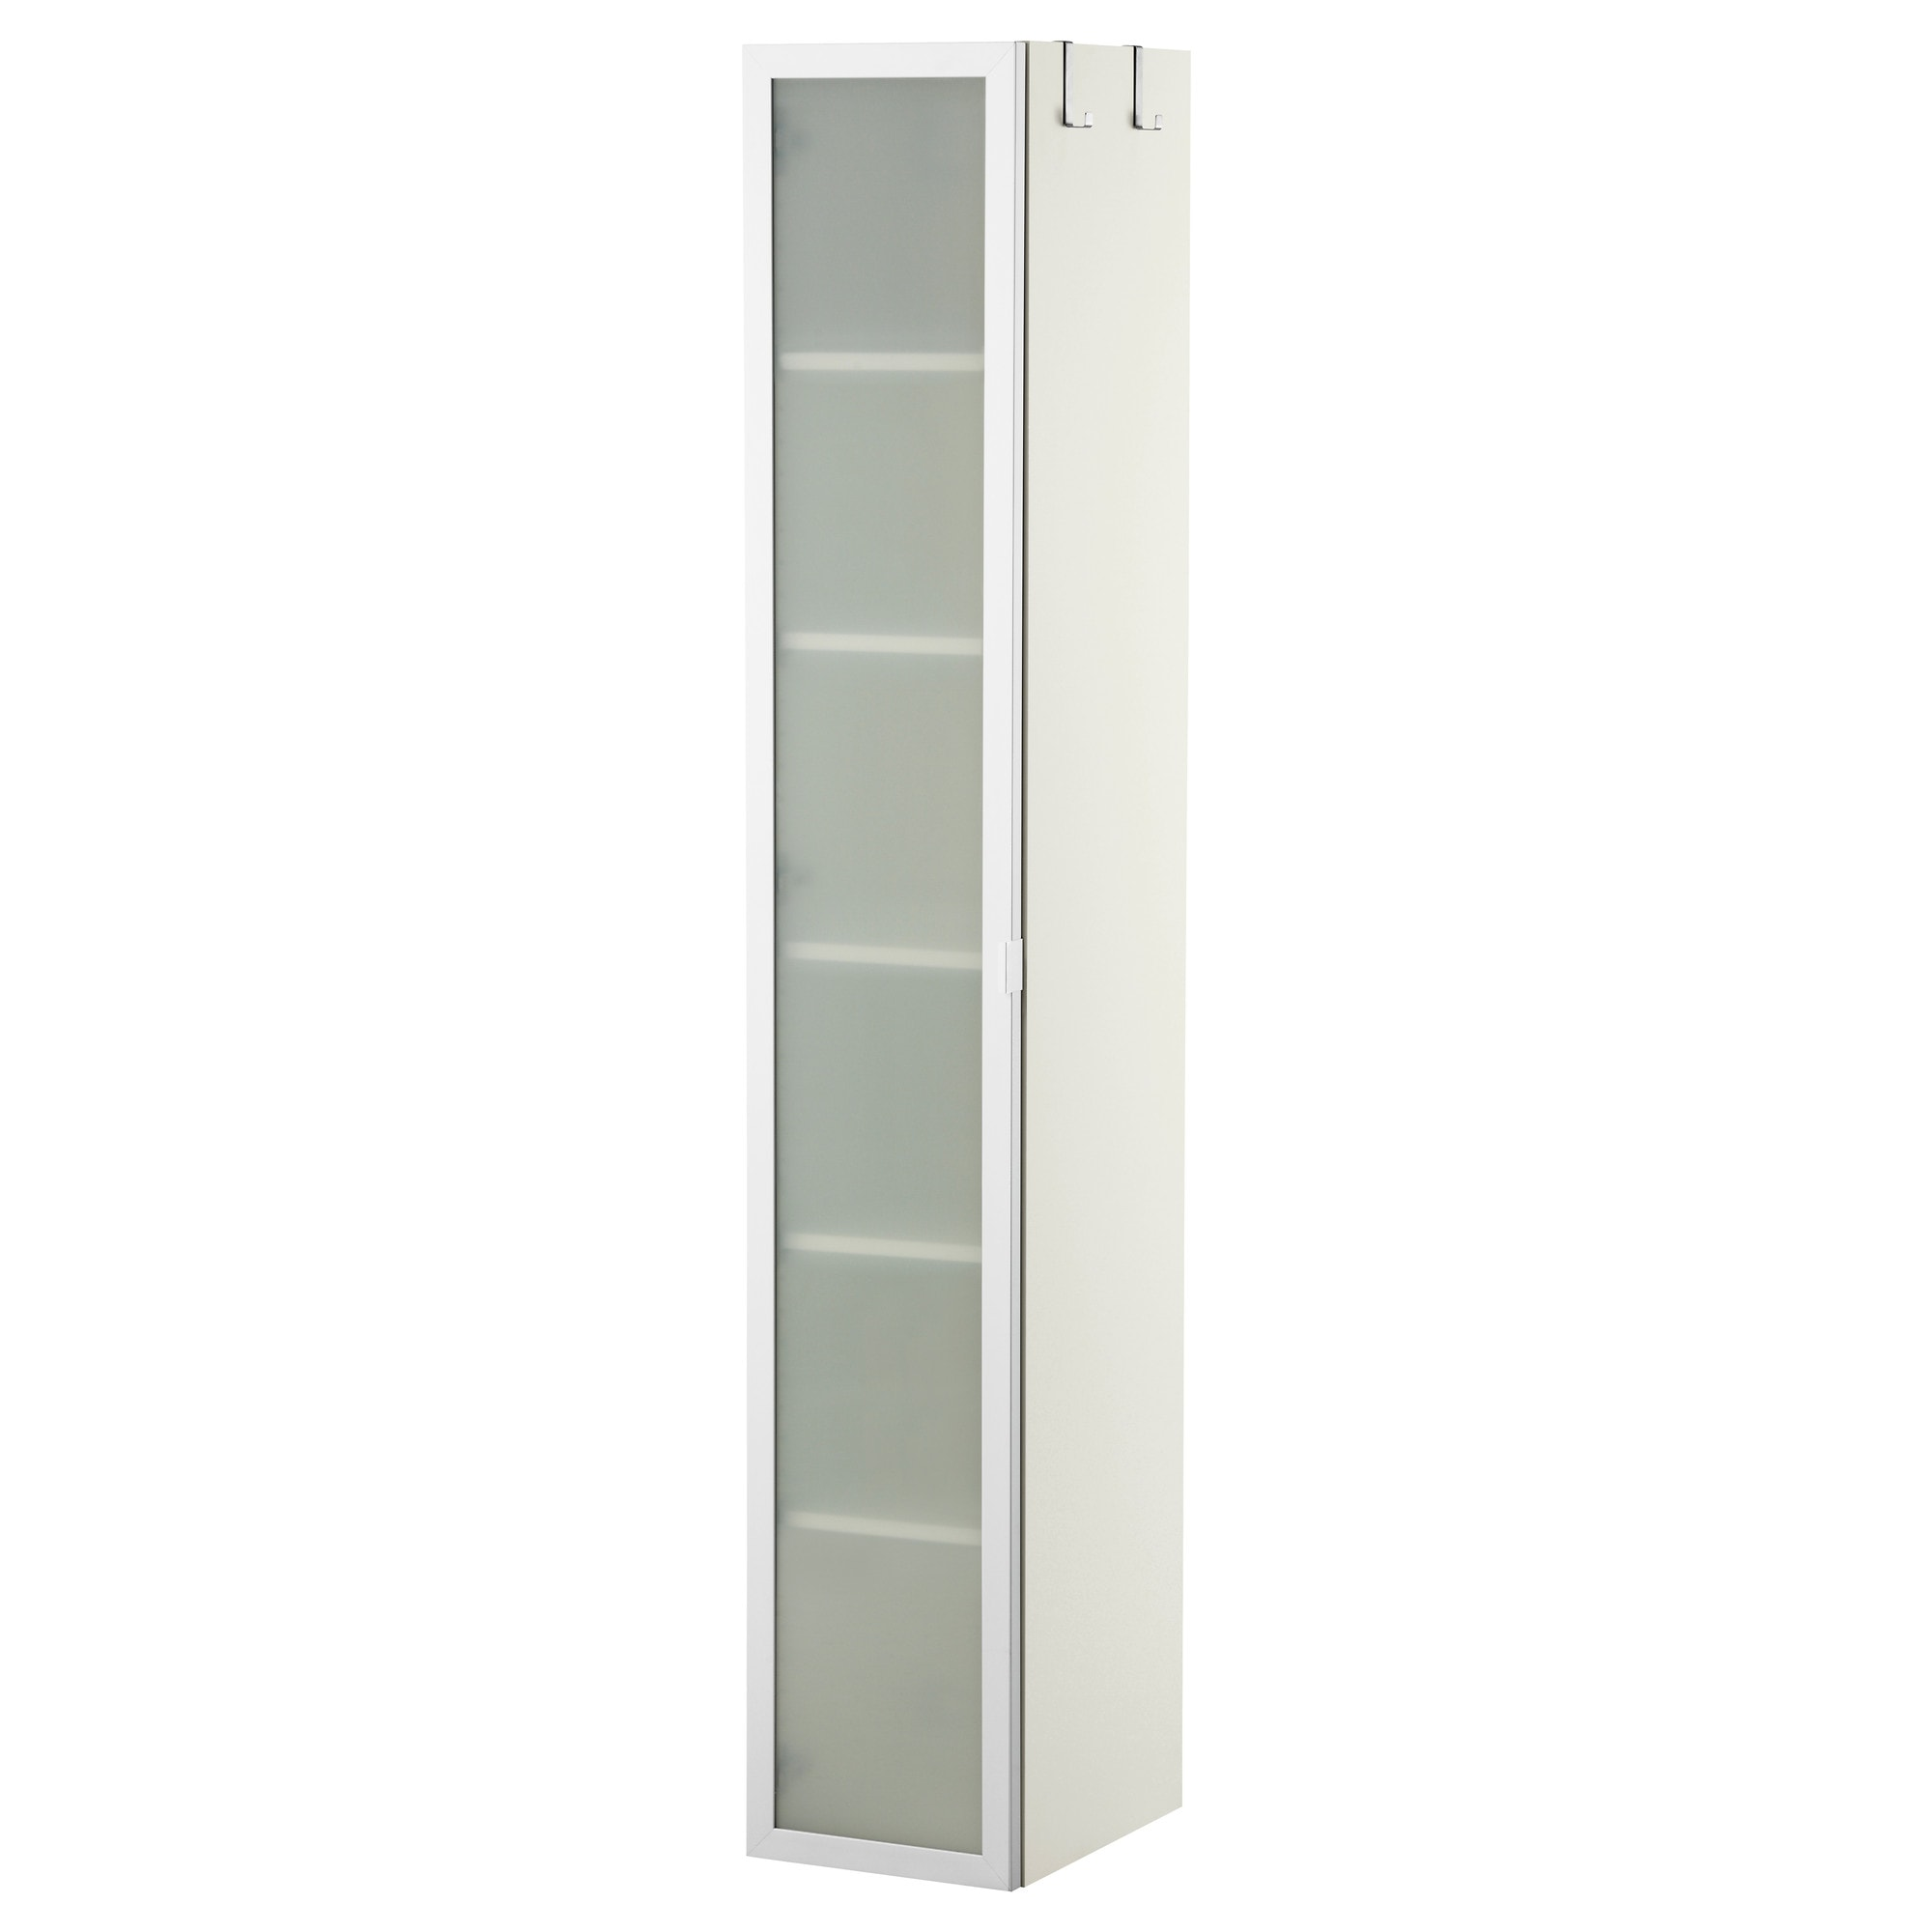 Bathroom wall cabinets ikea - Lill Ngen High Cabinet White Aluminum Width 11 3 4 Depth